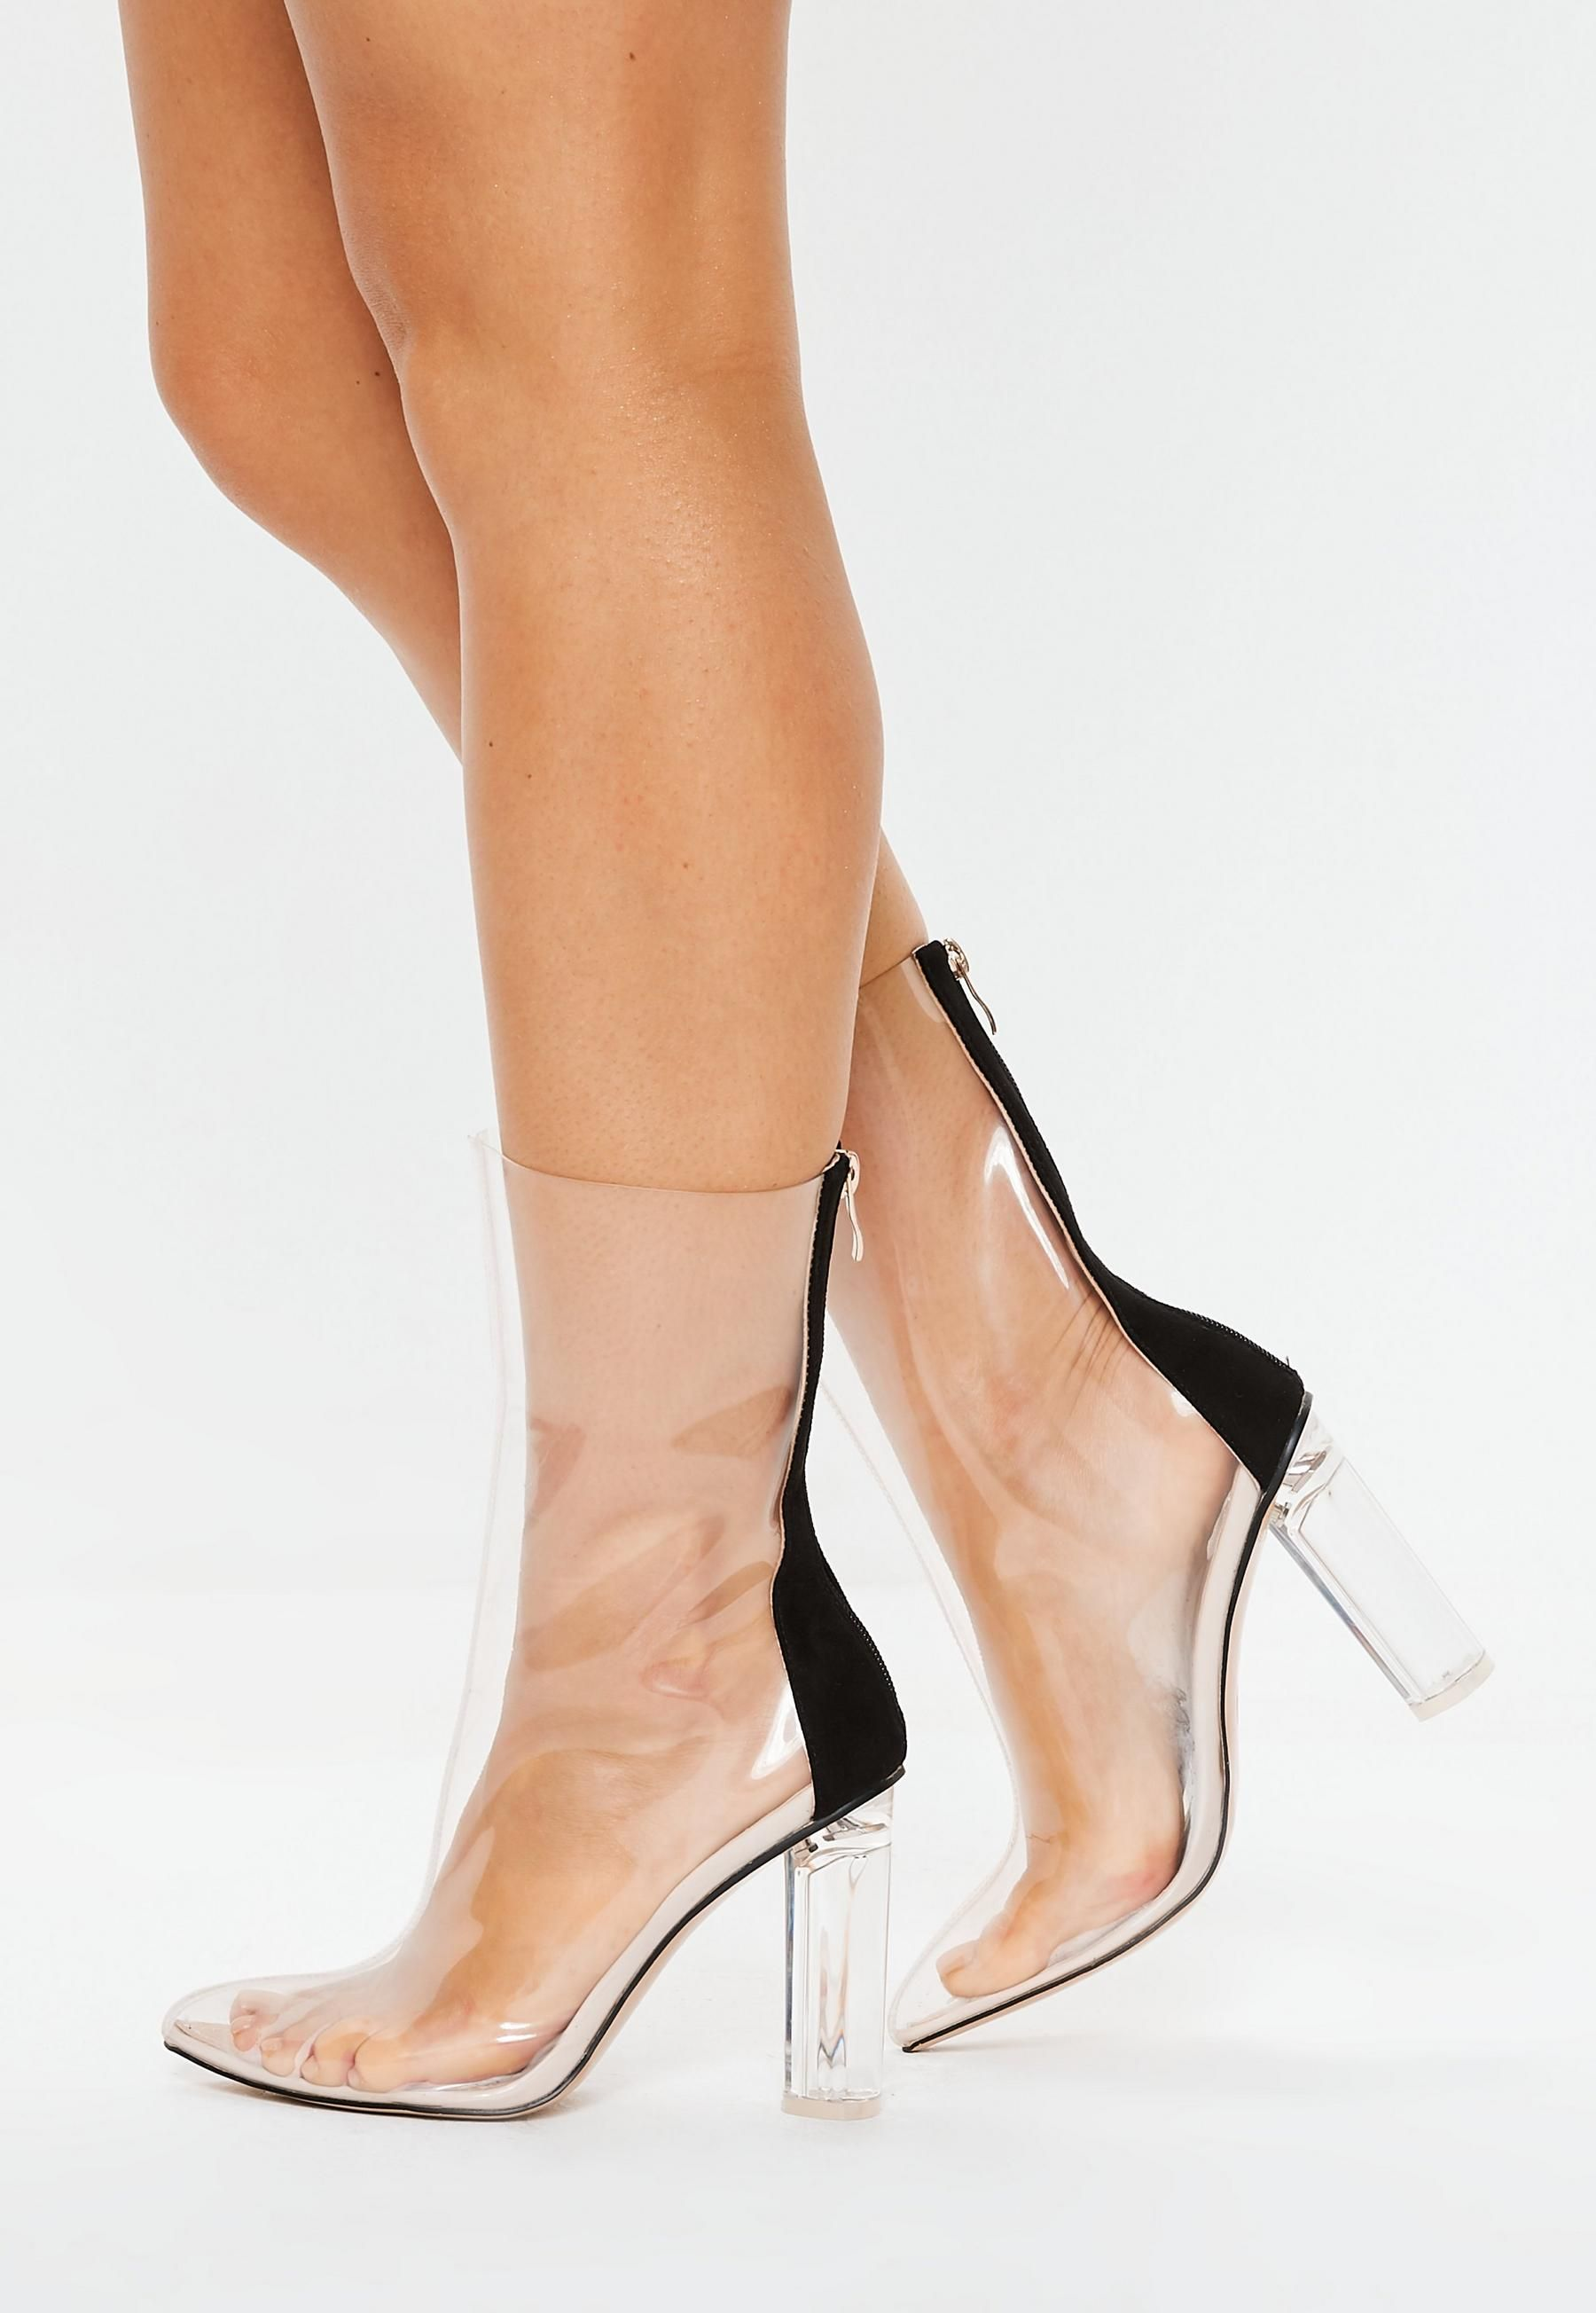 b867cdce7e8 Missguided - Clear Block Heel Ankle Boots in 2019 | Shoes ...